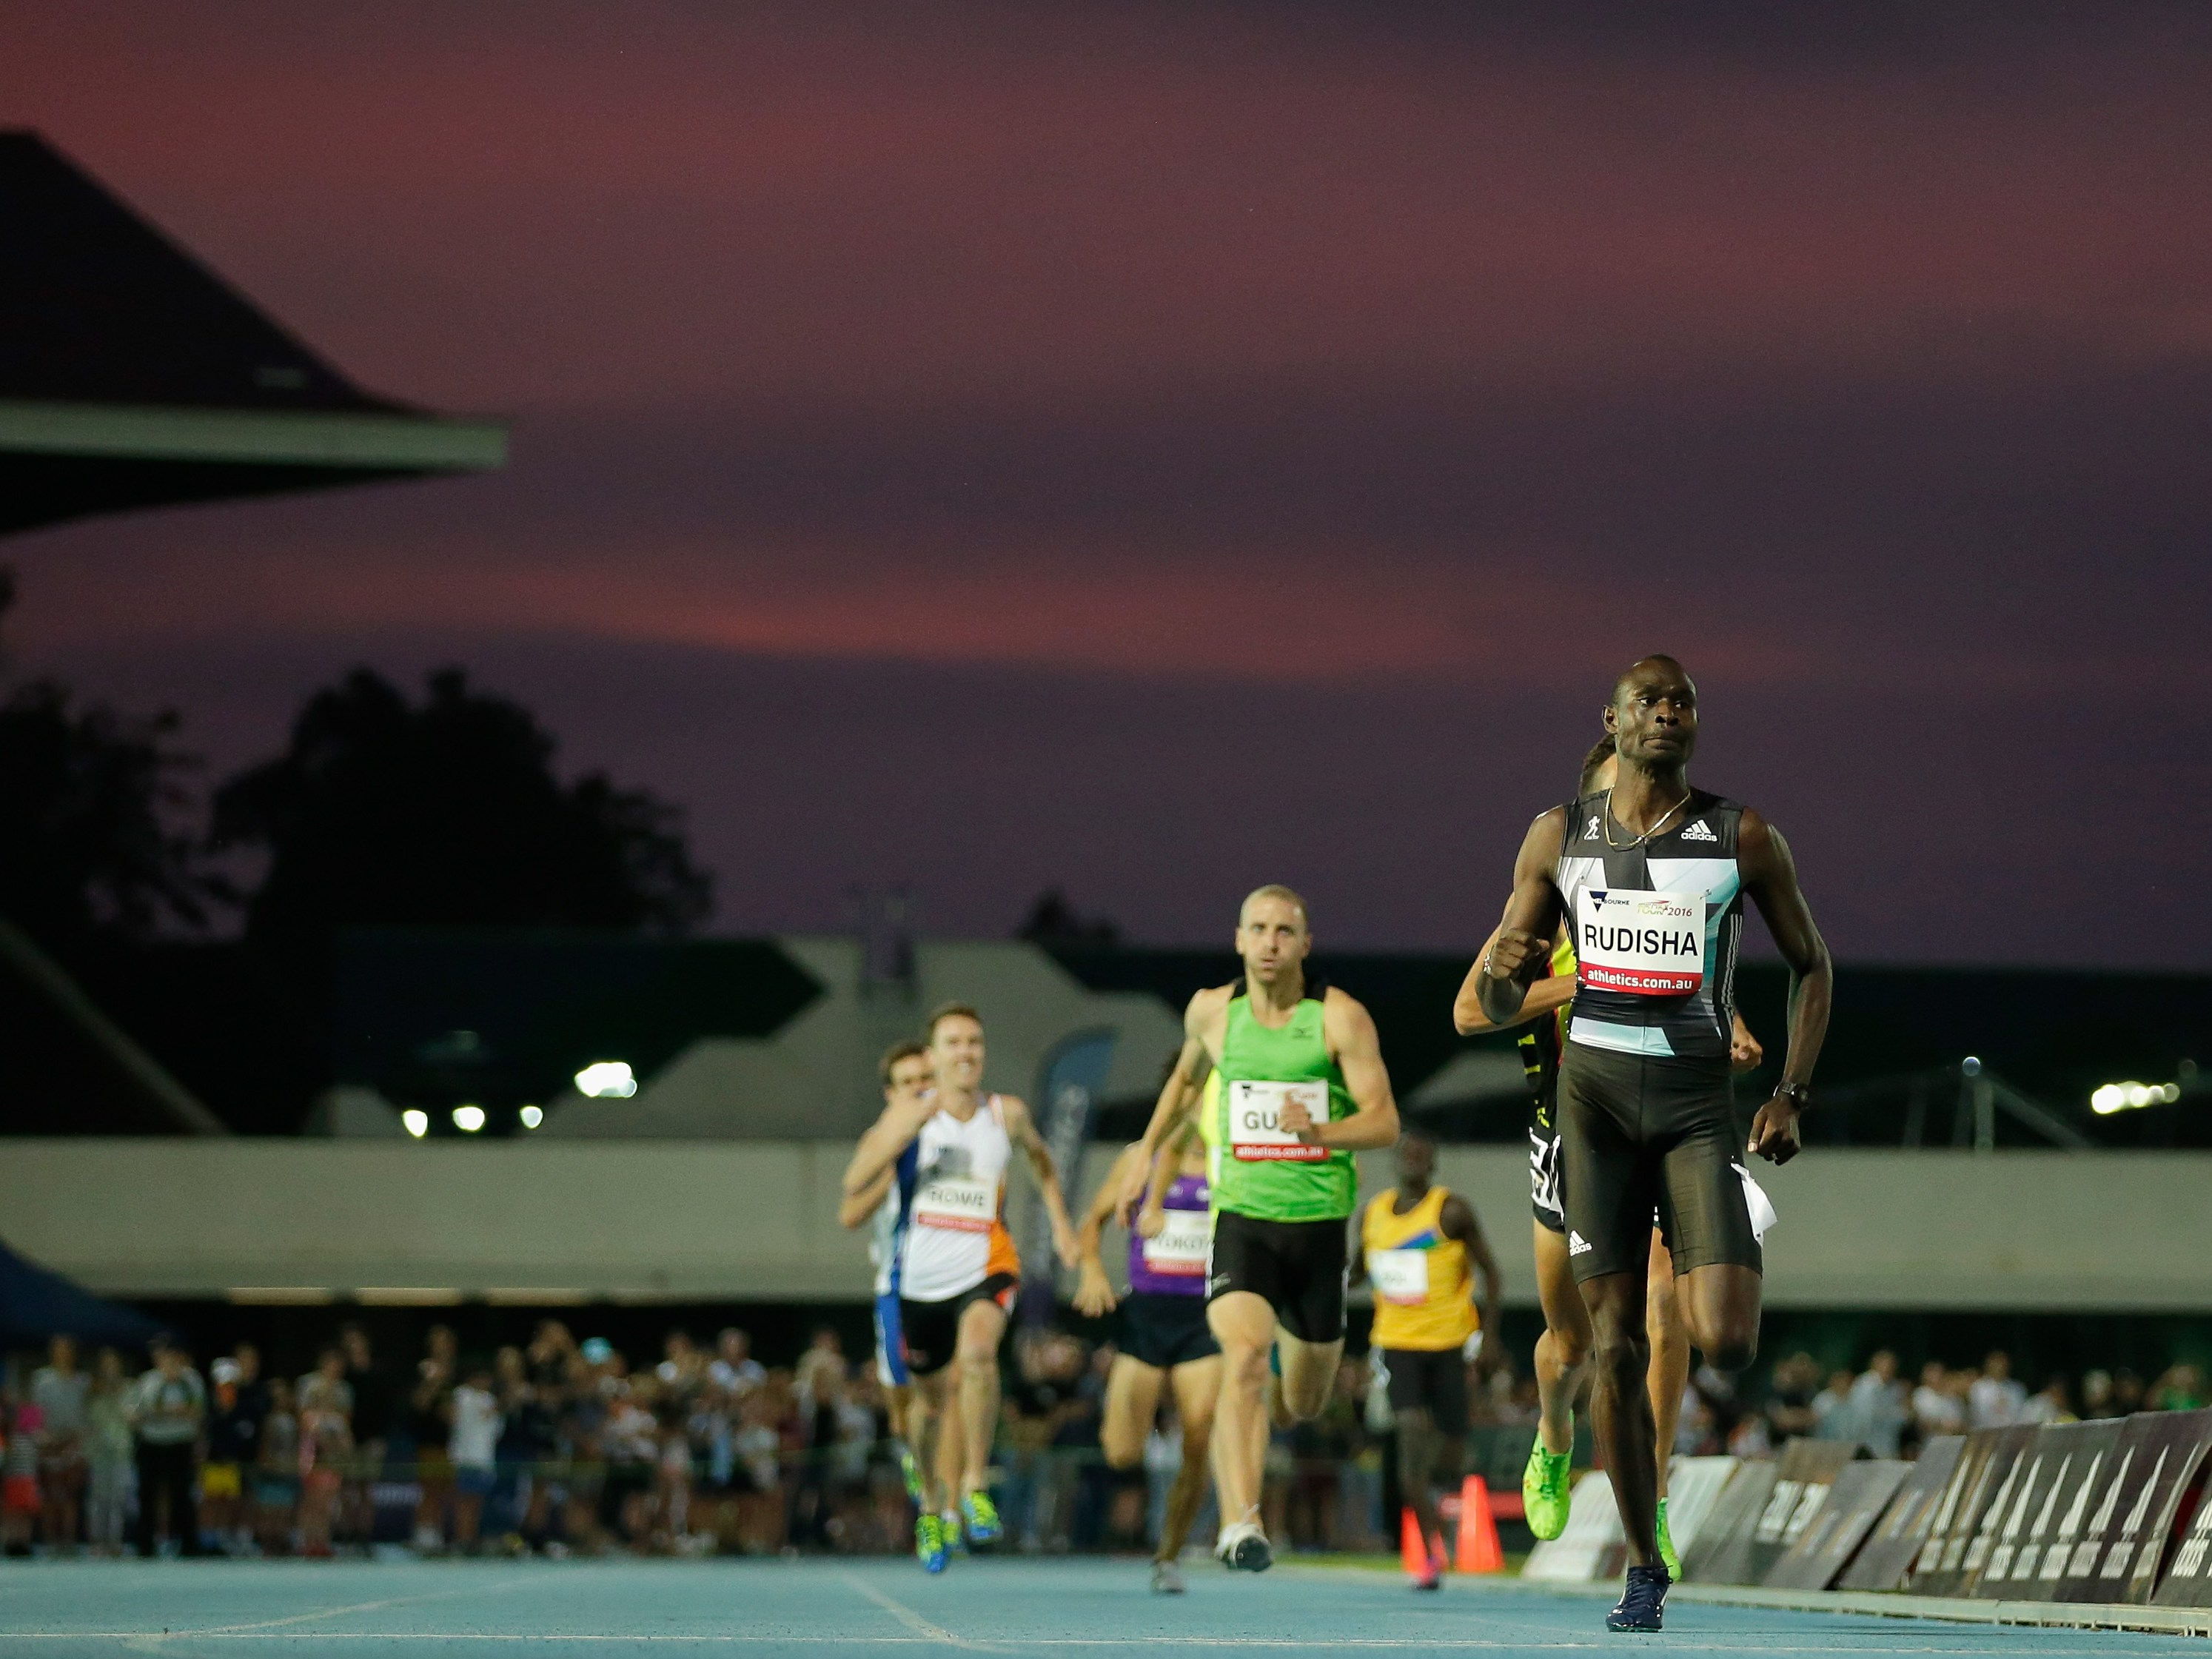 David Rudisha has not shown his dominance of old in recent seasons